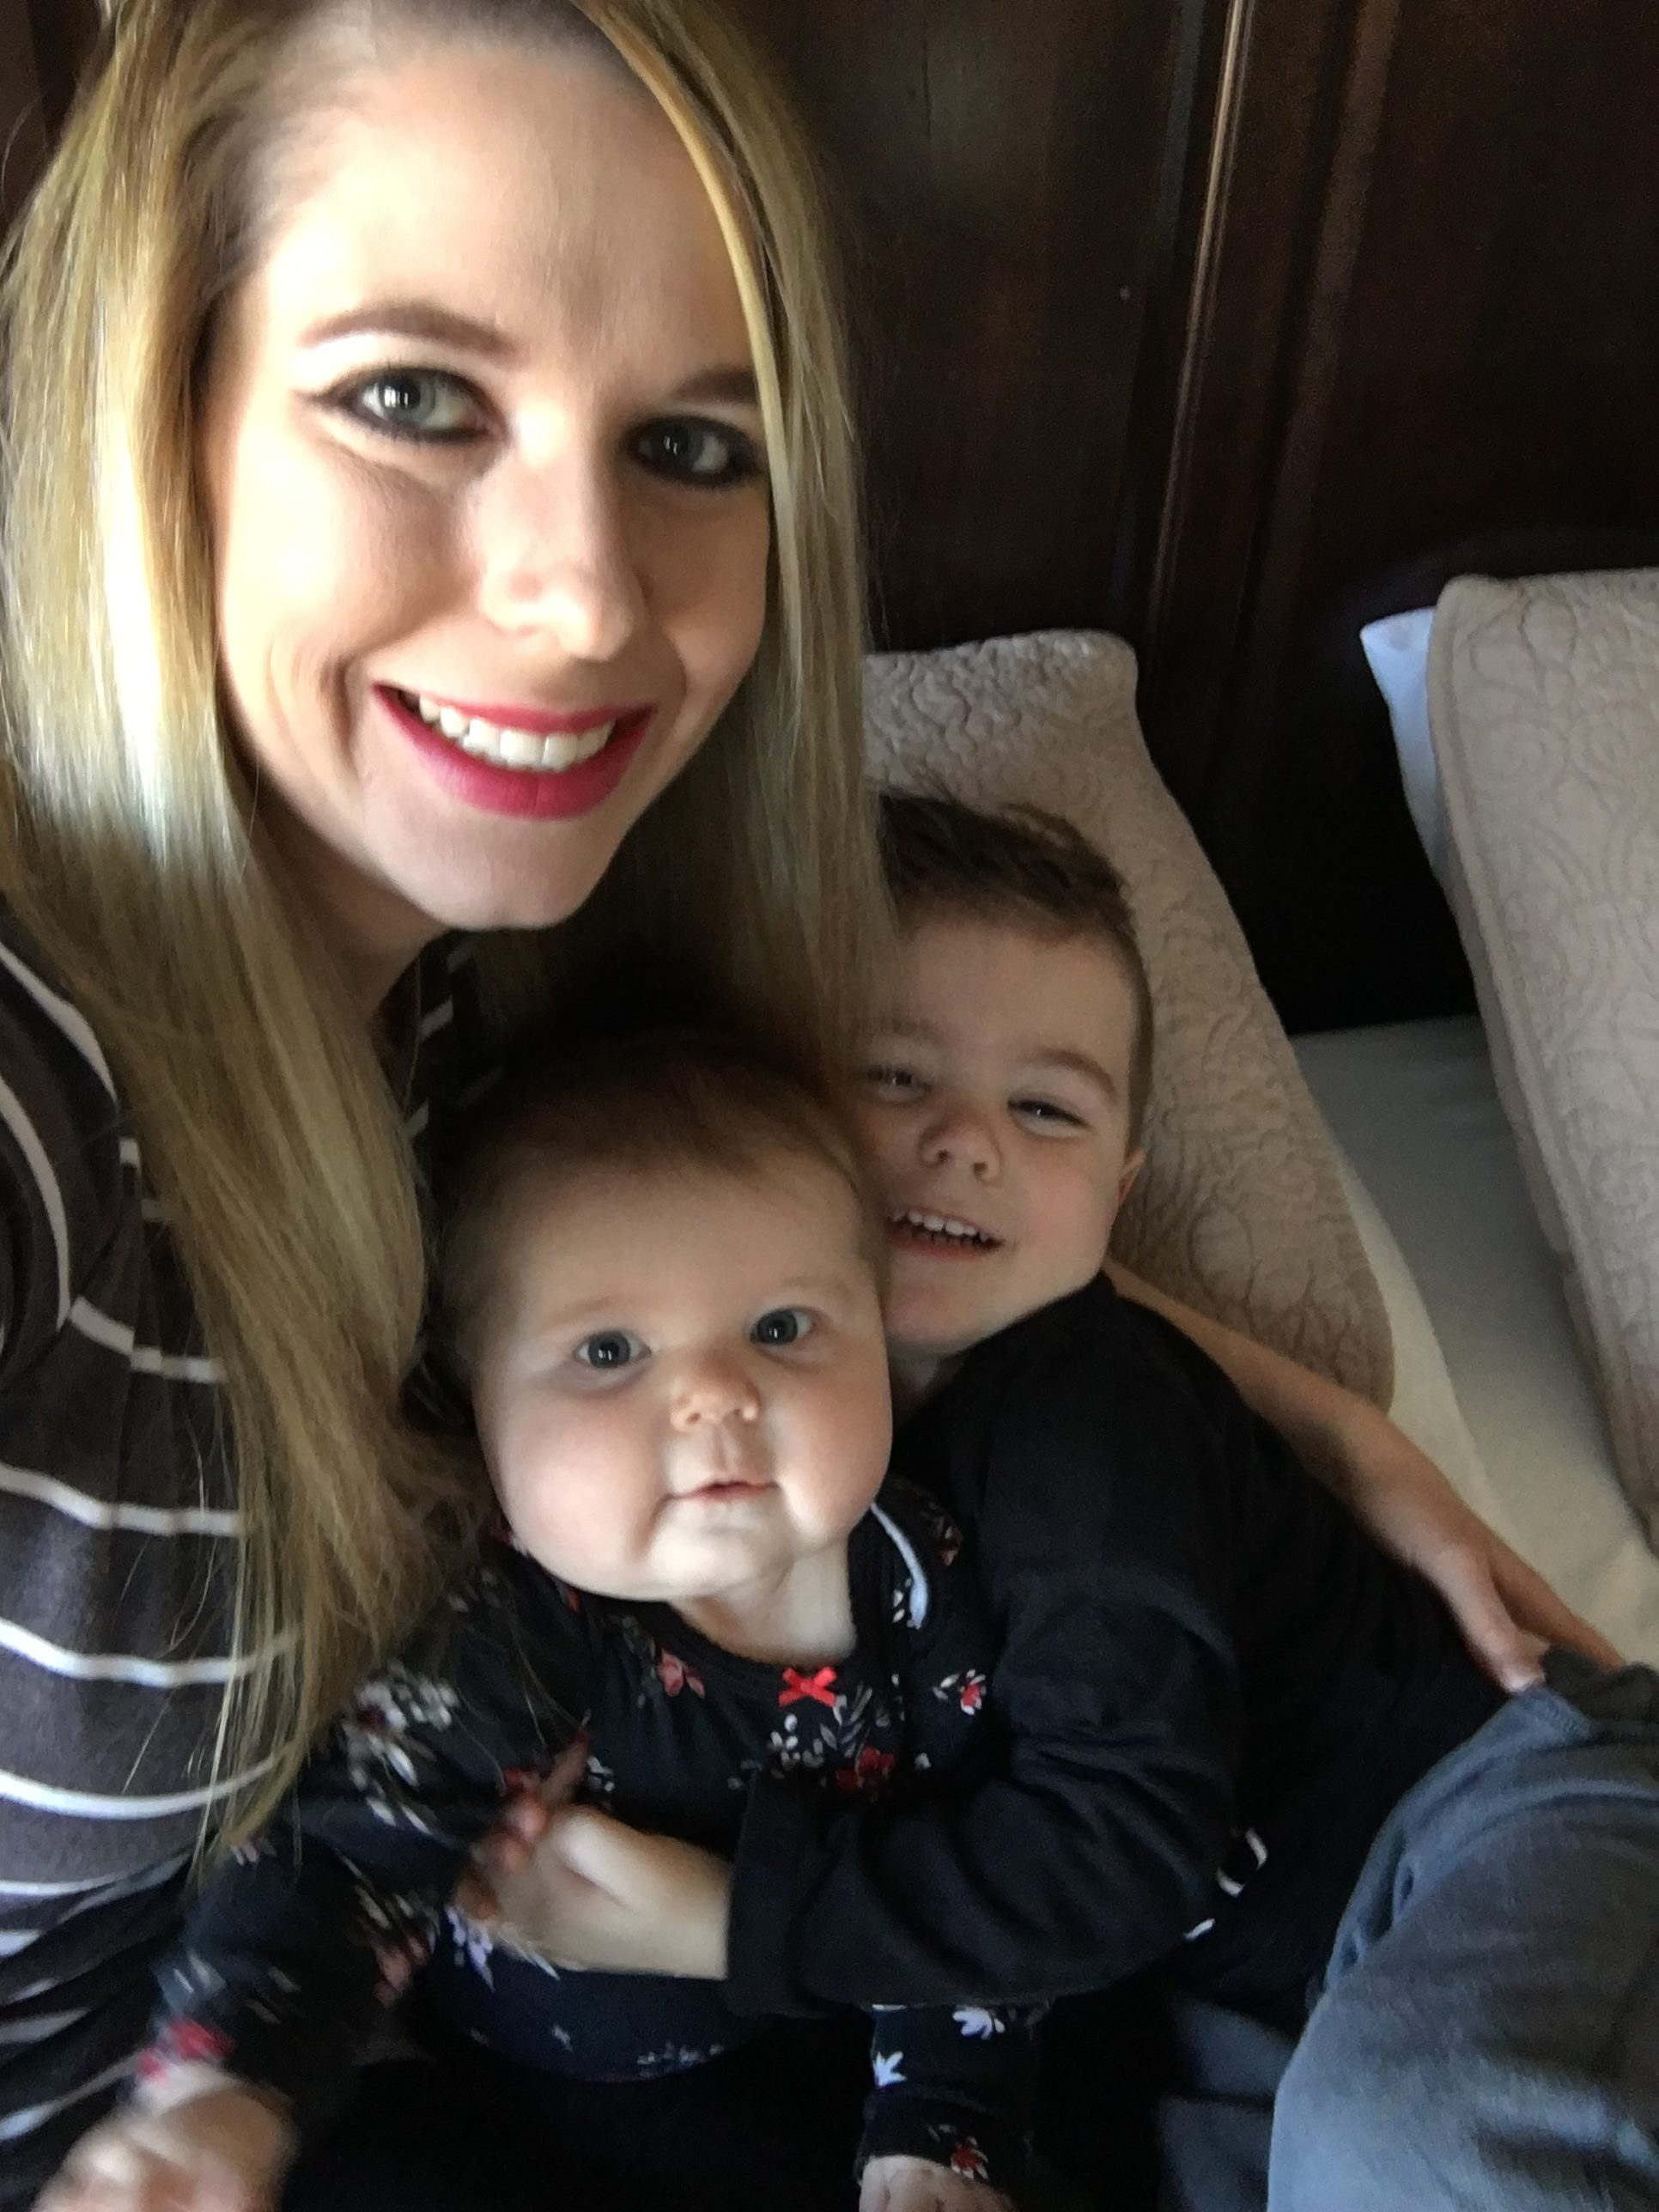 Day in the Life of a Stay-at-Home Mom of 2! Ever wondered what a SAHM does all day? How do moms of 2 schedule their day? How do you keep 2 kids busy all day? Here's a typical day in the life of a SAHM to 2!